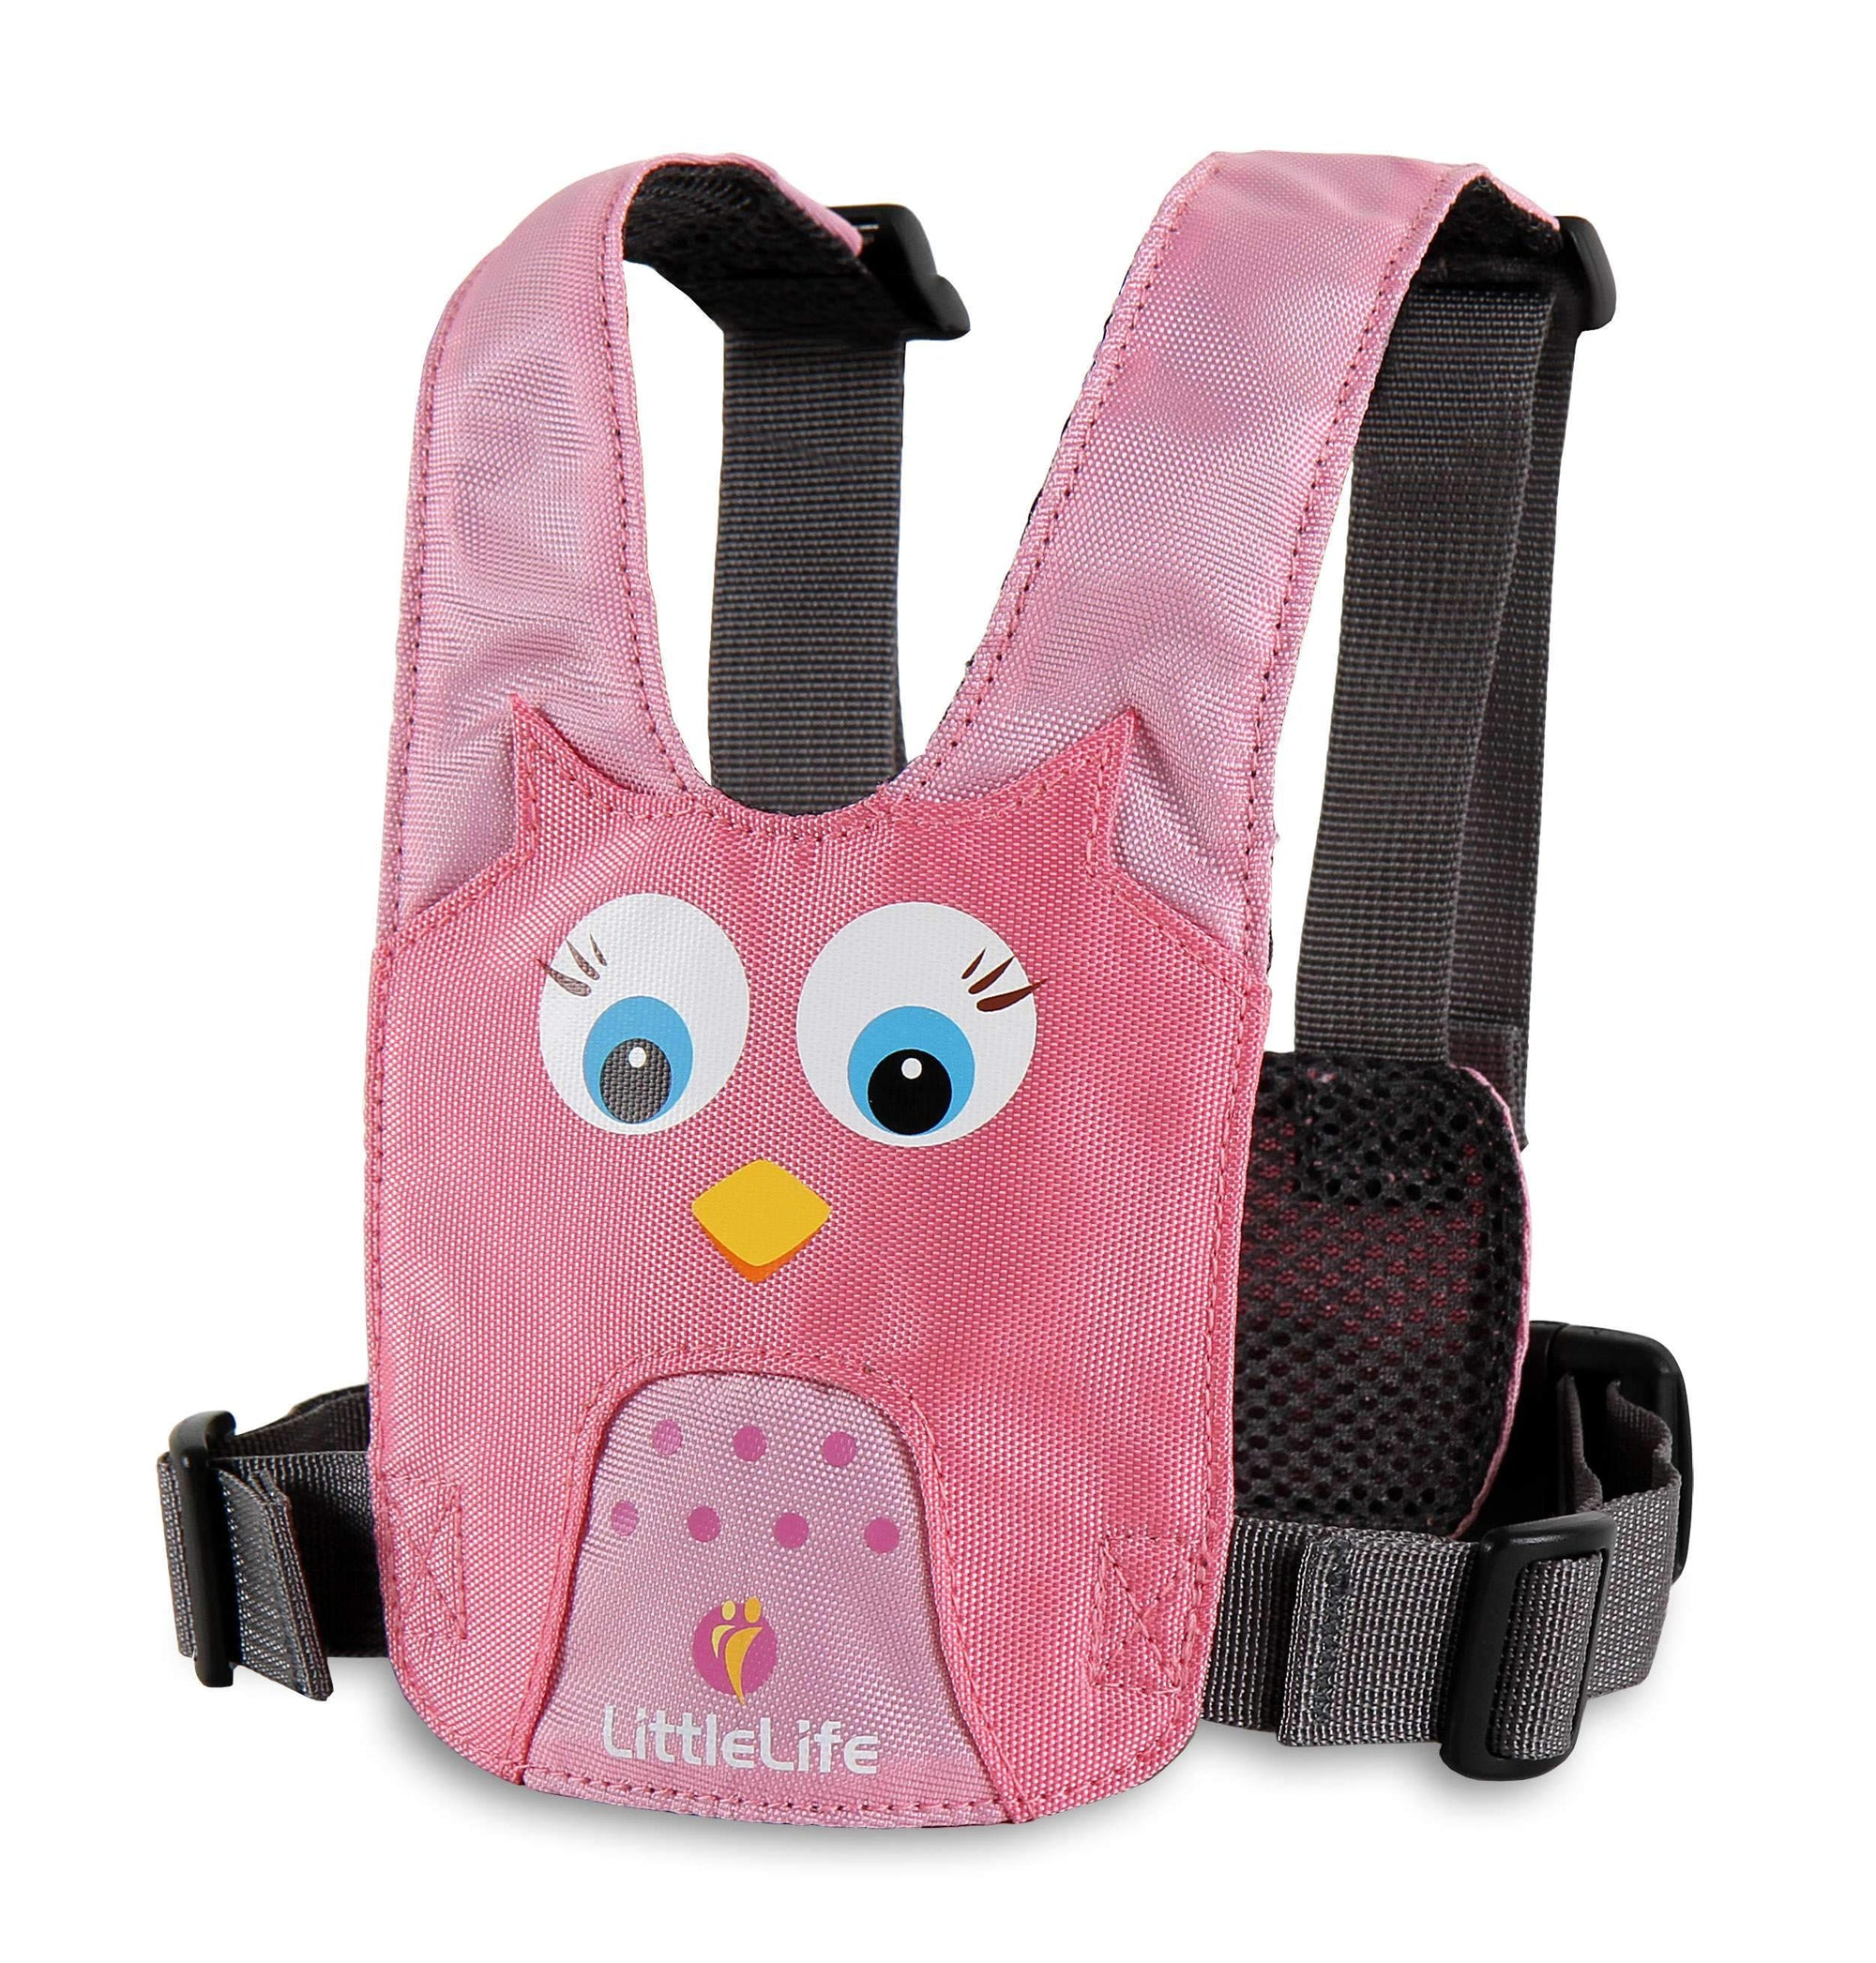 Little Life Owl Toddler Safety Harness